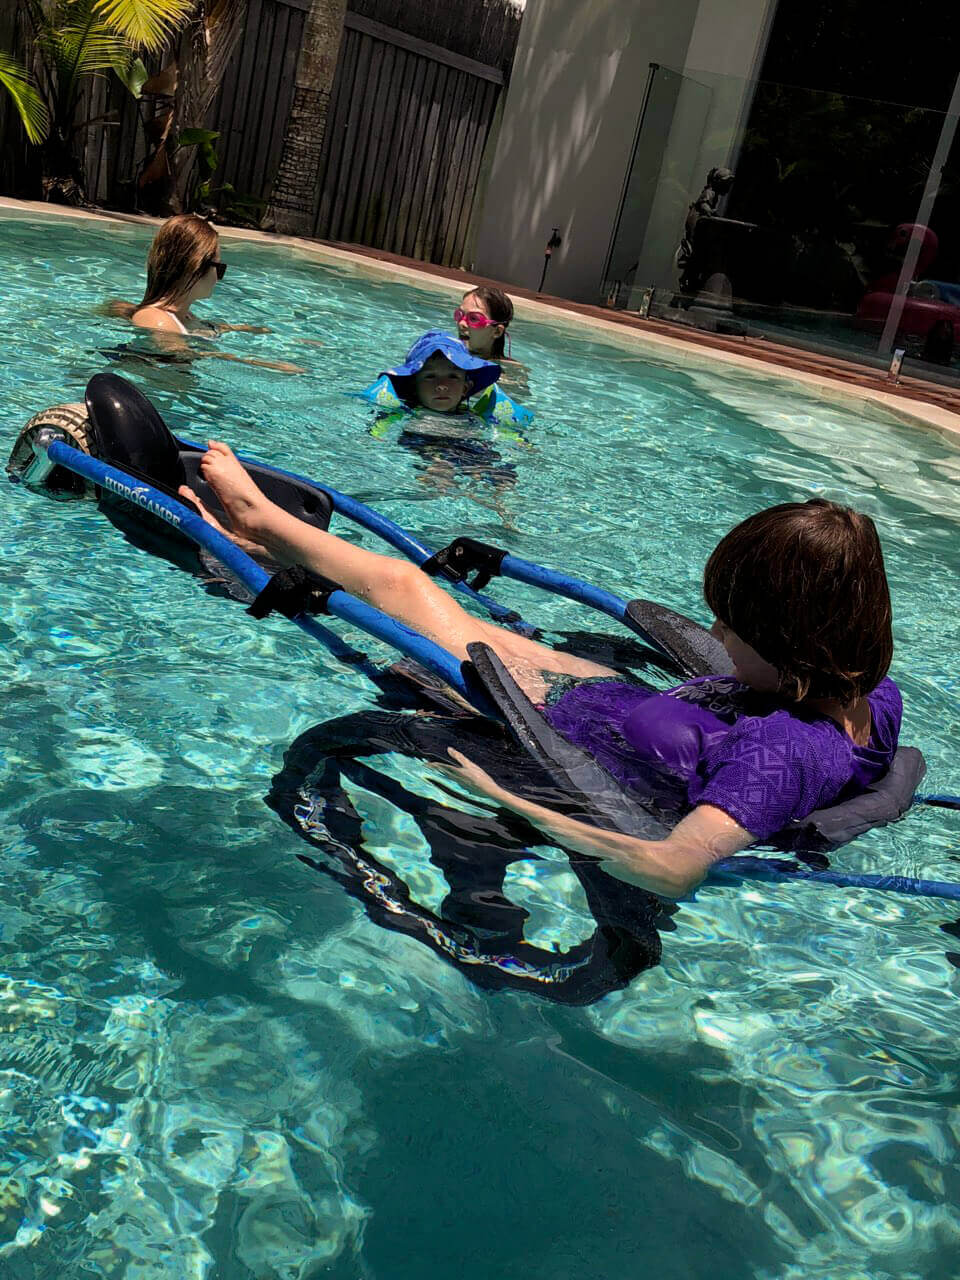 Child in wheelchair designed for swimming pool with 3 other children playing